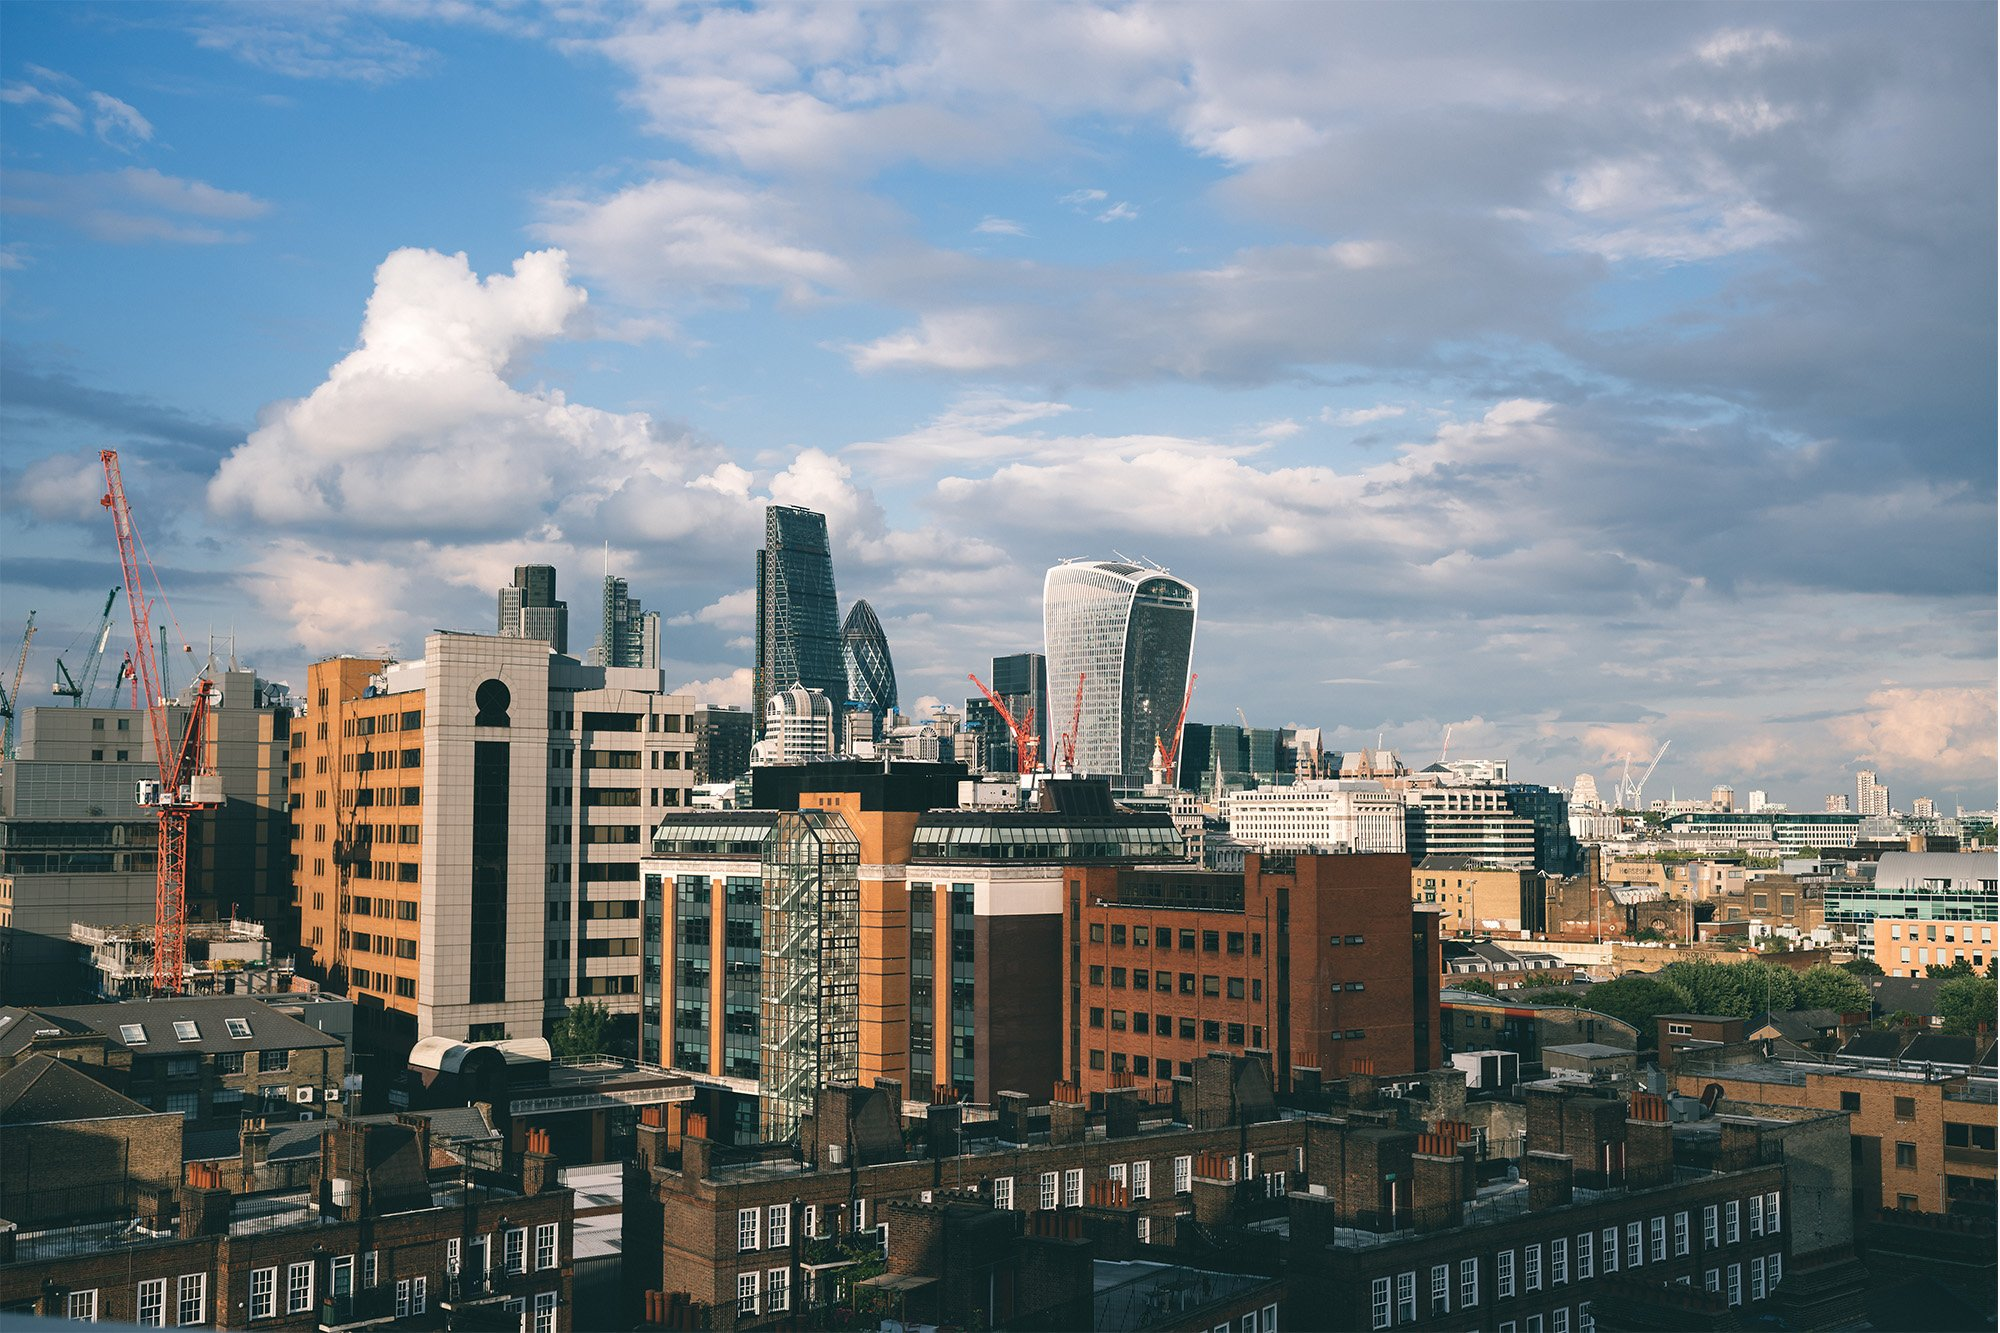 Testing the Sony A7R II – Daytime view of the City in London